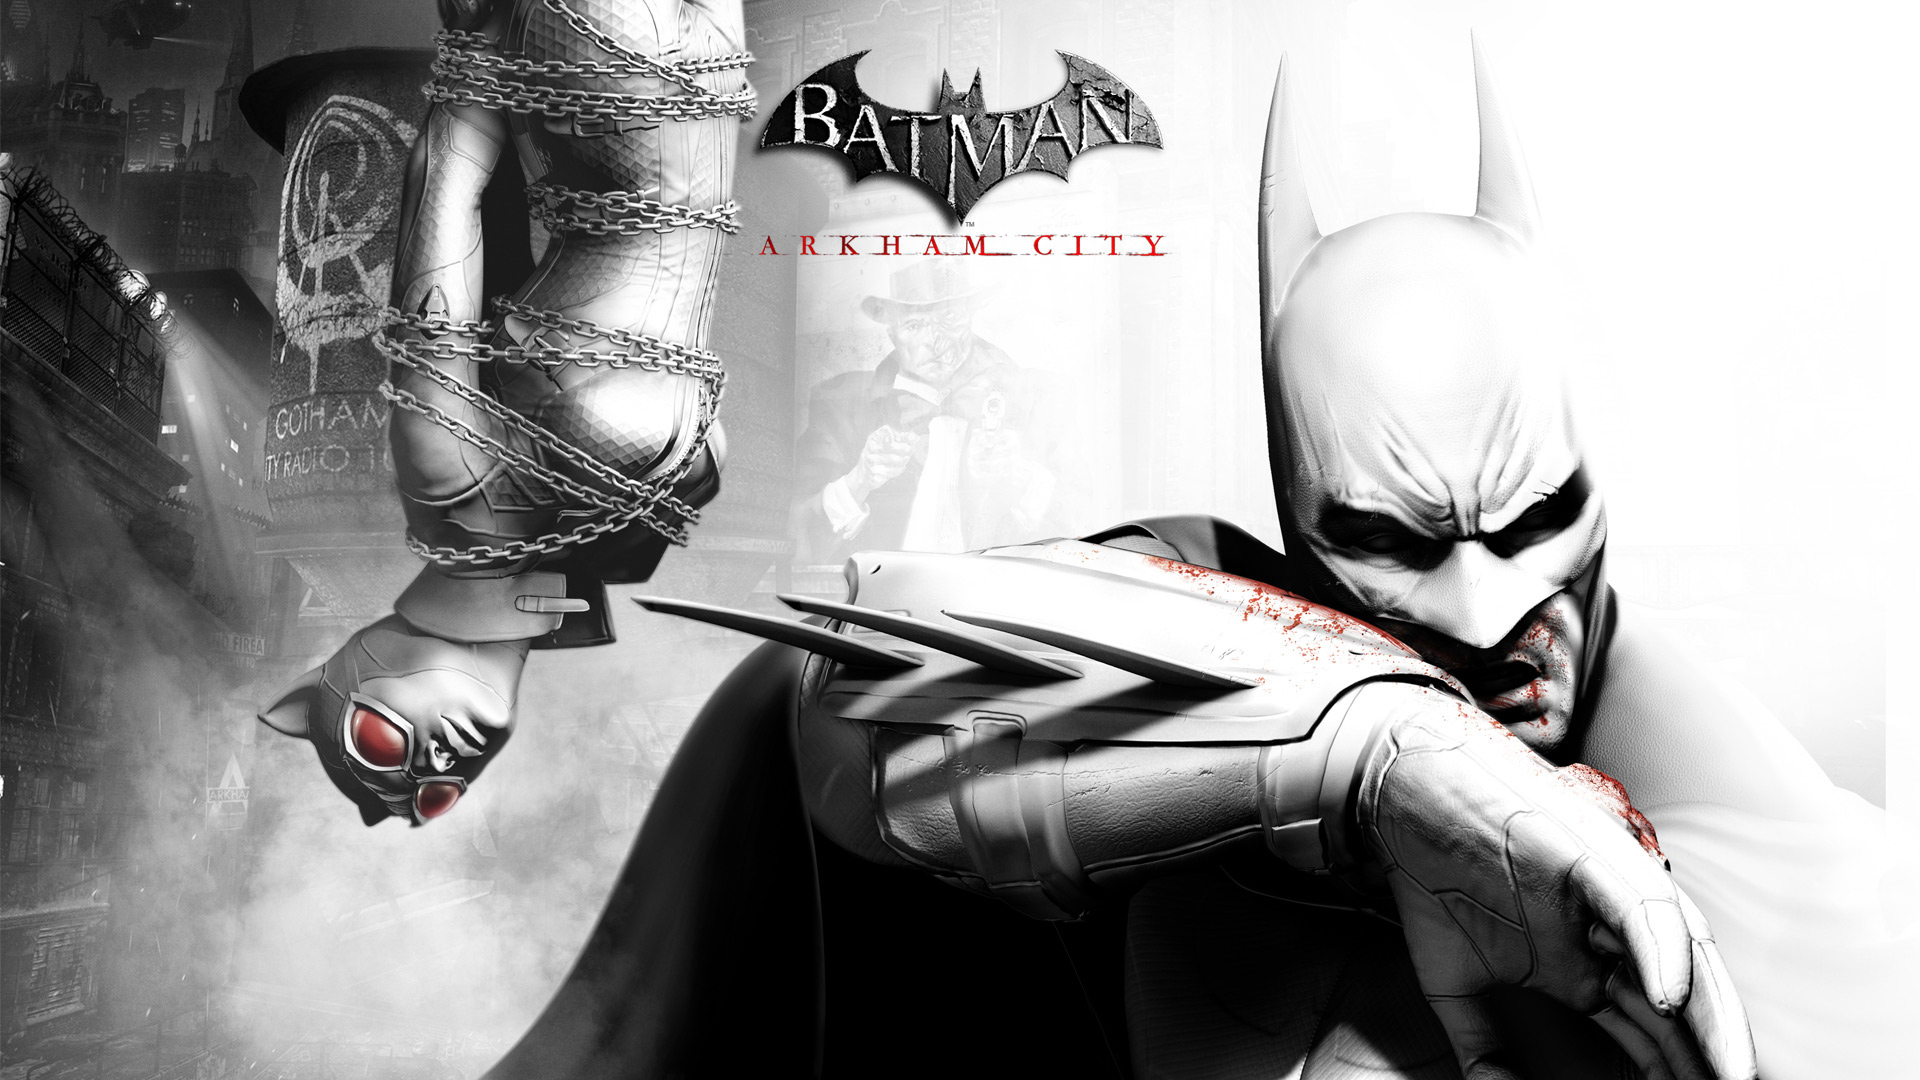 Batman Arkham City Free Wallpaper Hd 1080p Anime Wallpaper